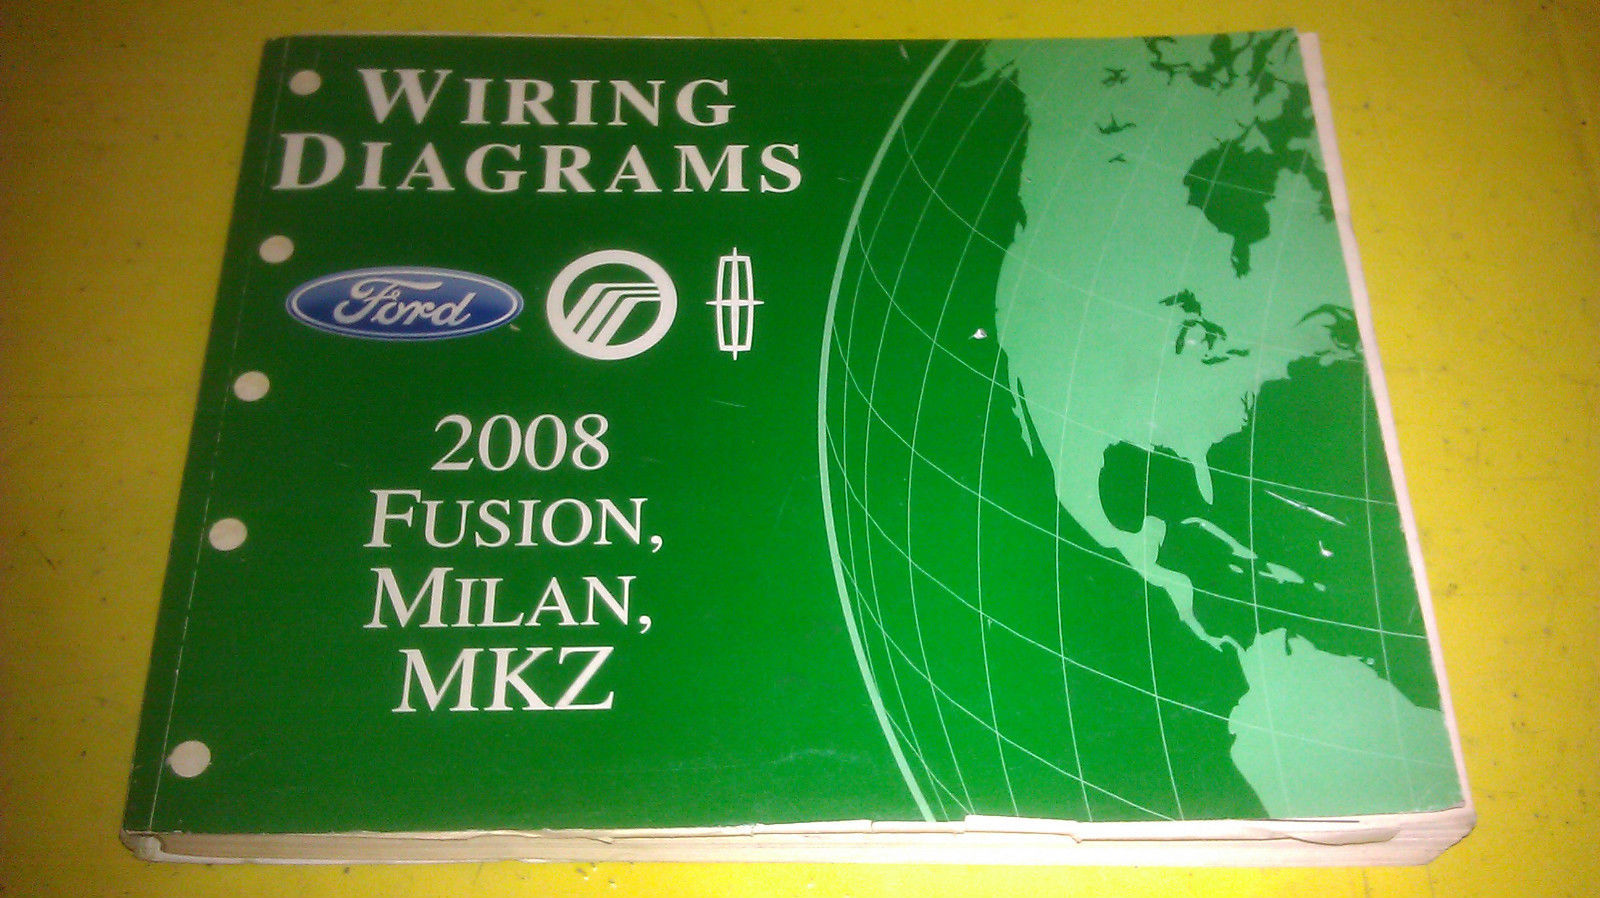 hight resolution of 2008 fusion milan mkz wiring diagrams fcs1429908 fcs1429908